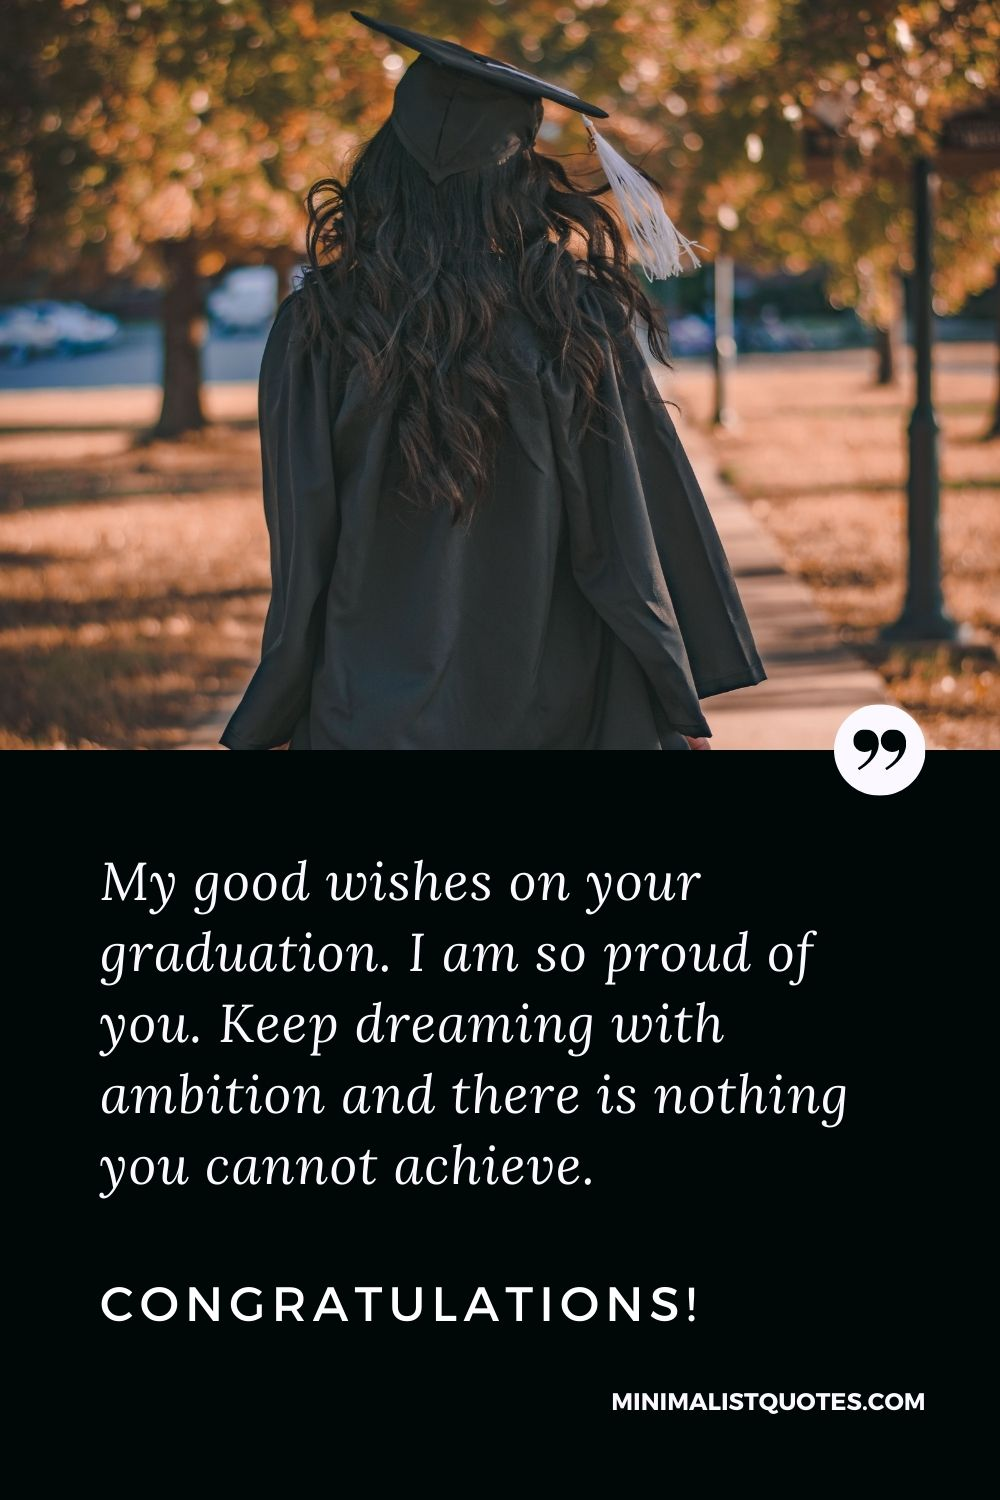 Graduation Quote, Wish & Message With Image: My good wishes on your graduation. I am so proud of you. Keep dreaming with ambition and there is nothing you cannot achieve. Congratulations!